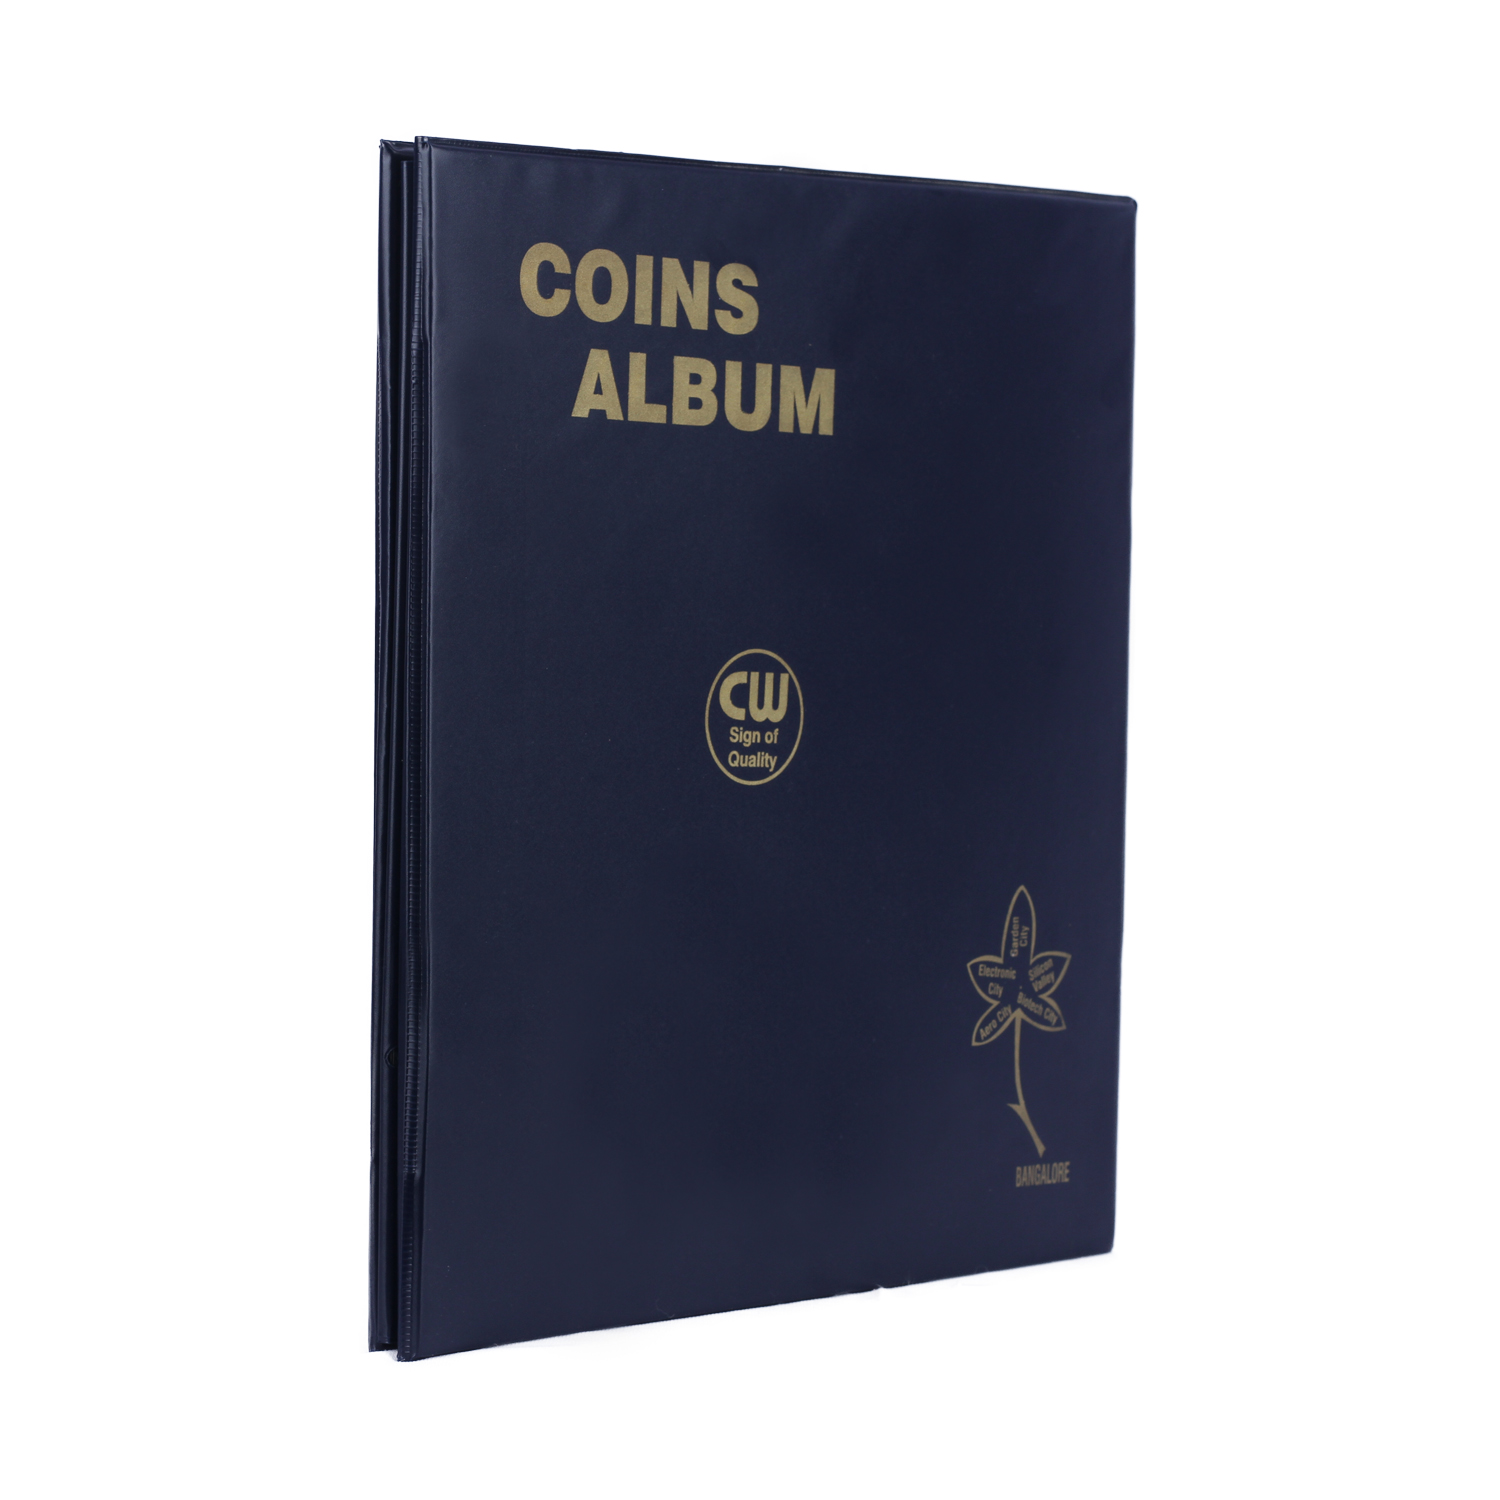 Coin Album for 250 Coins - Transparent Sheets